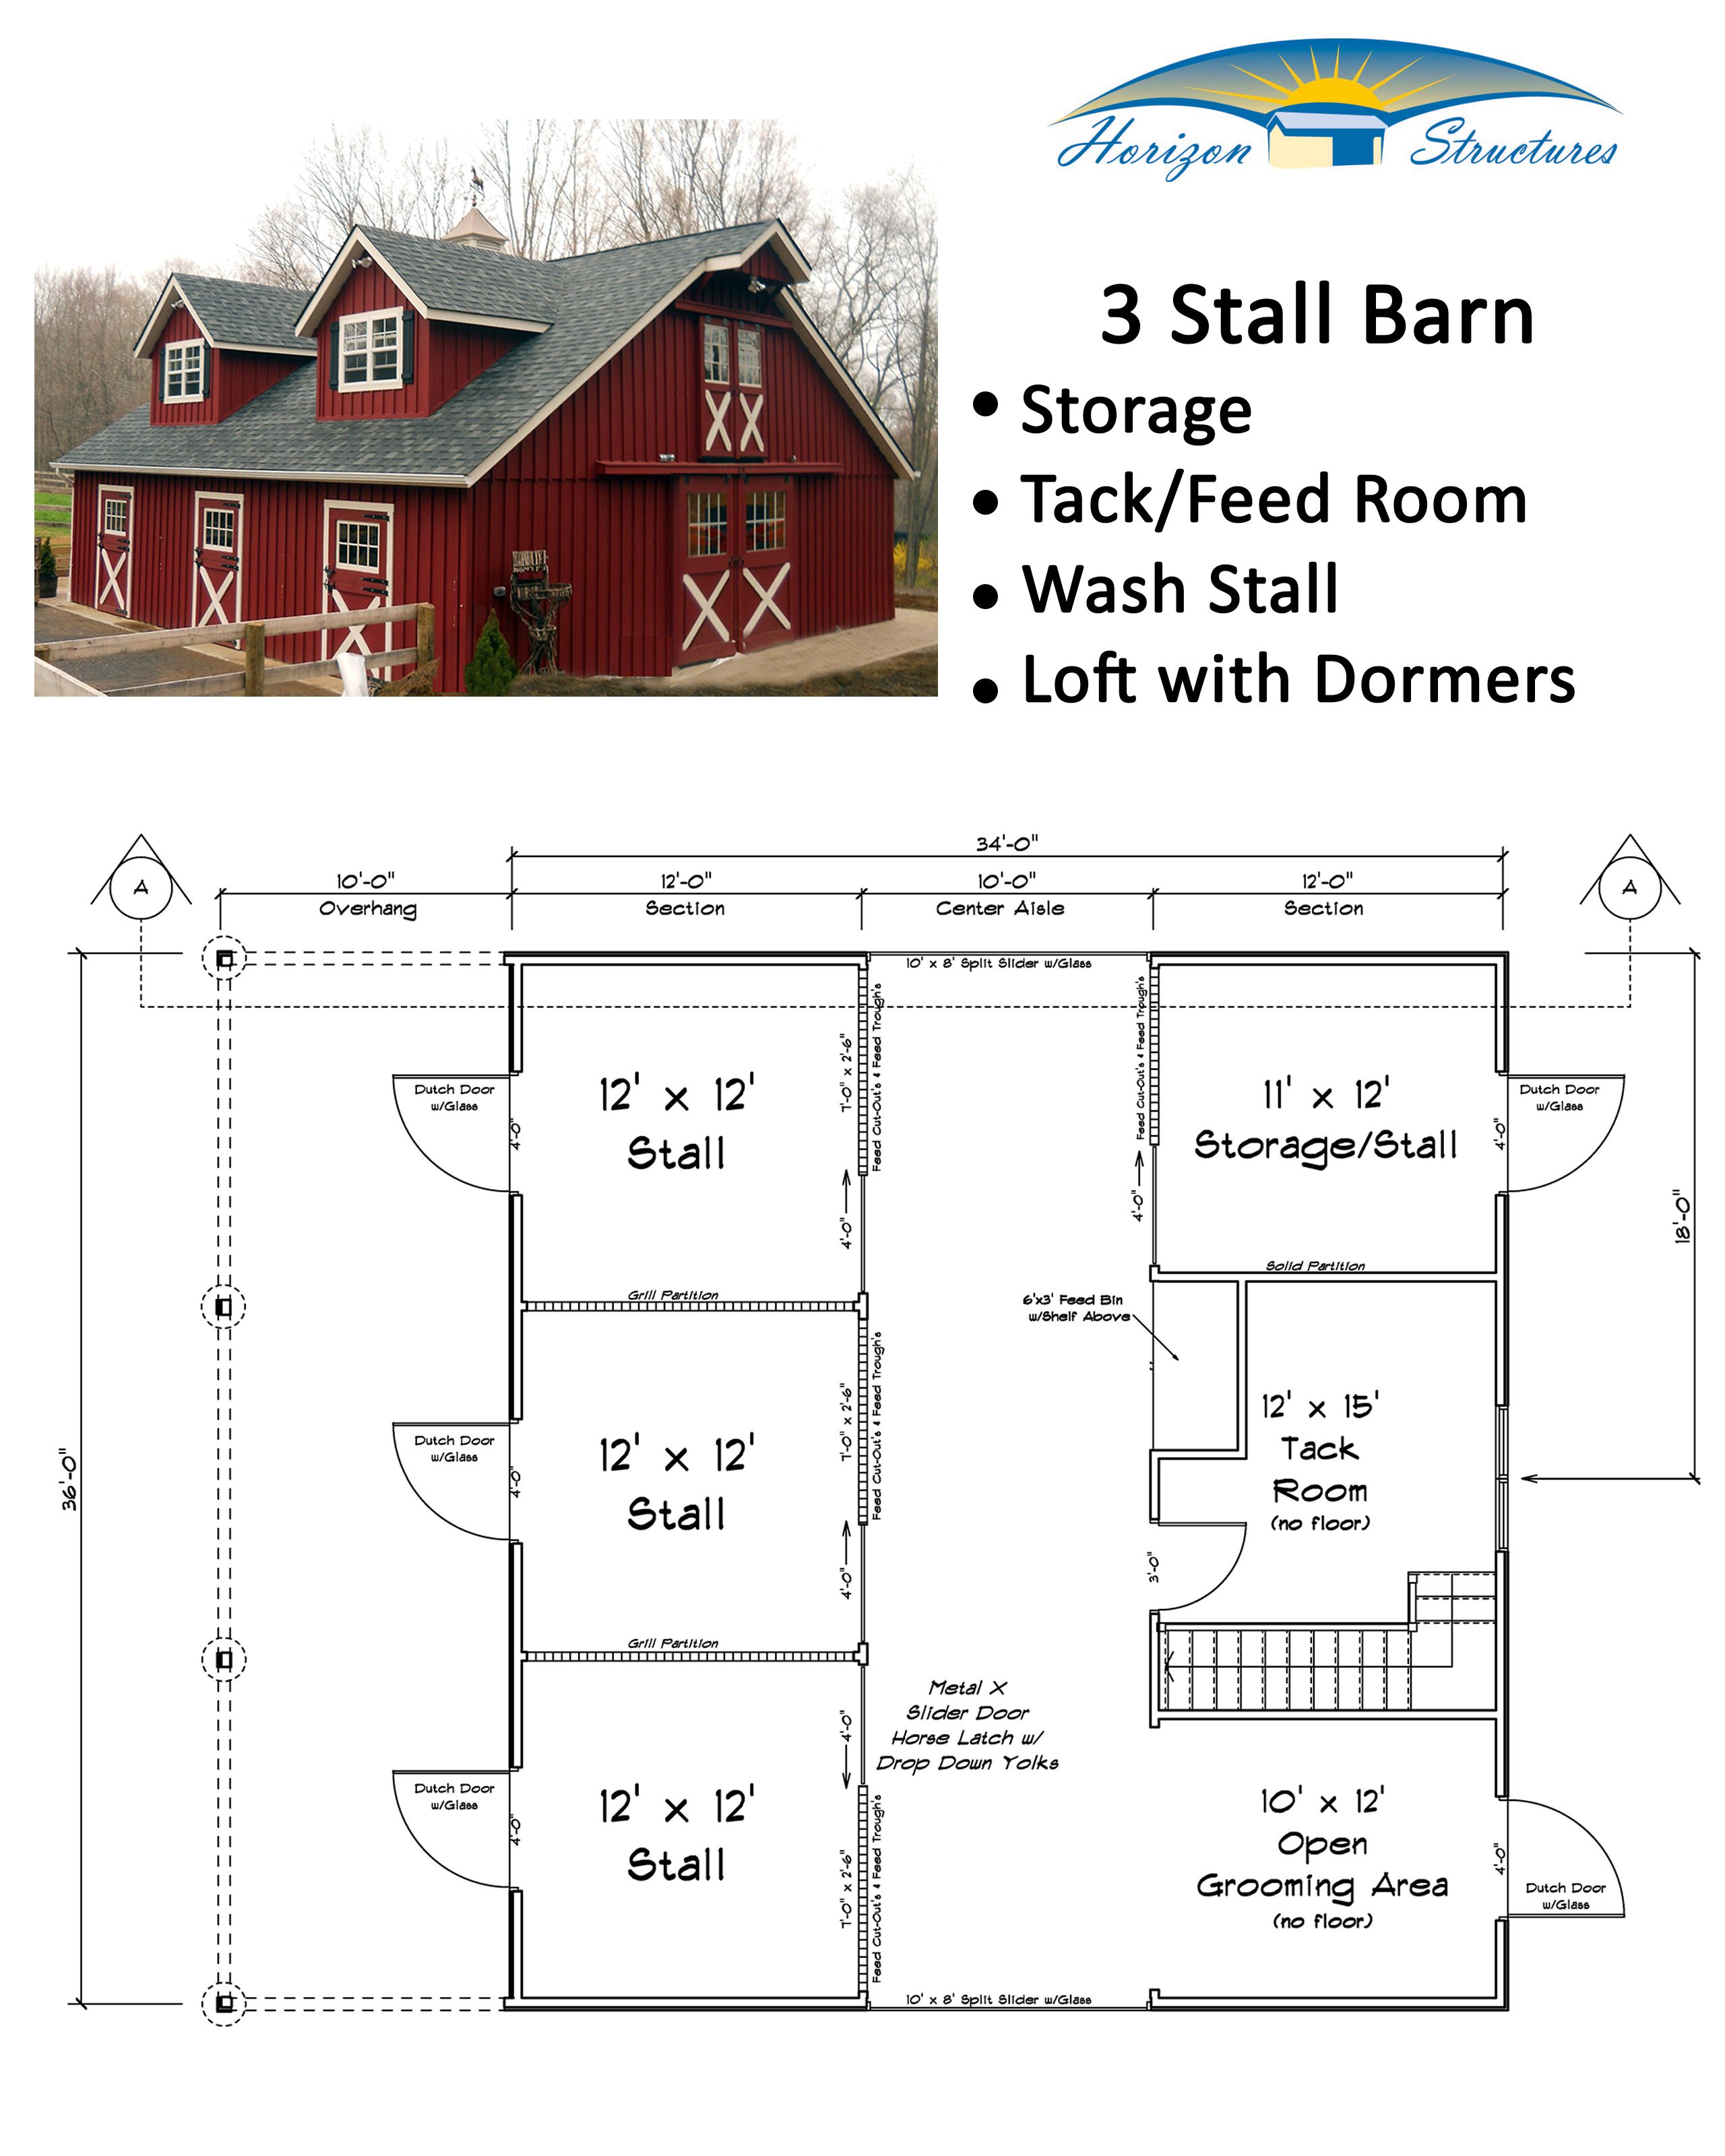 34x36 Modular Horse Barn Starting At About $50k. Fully